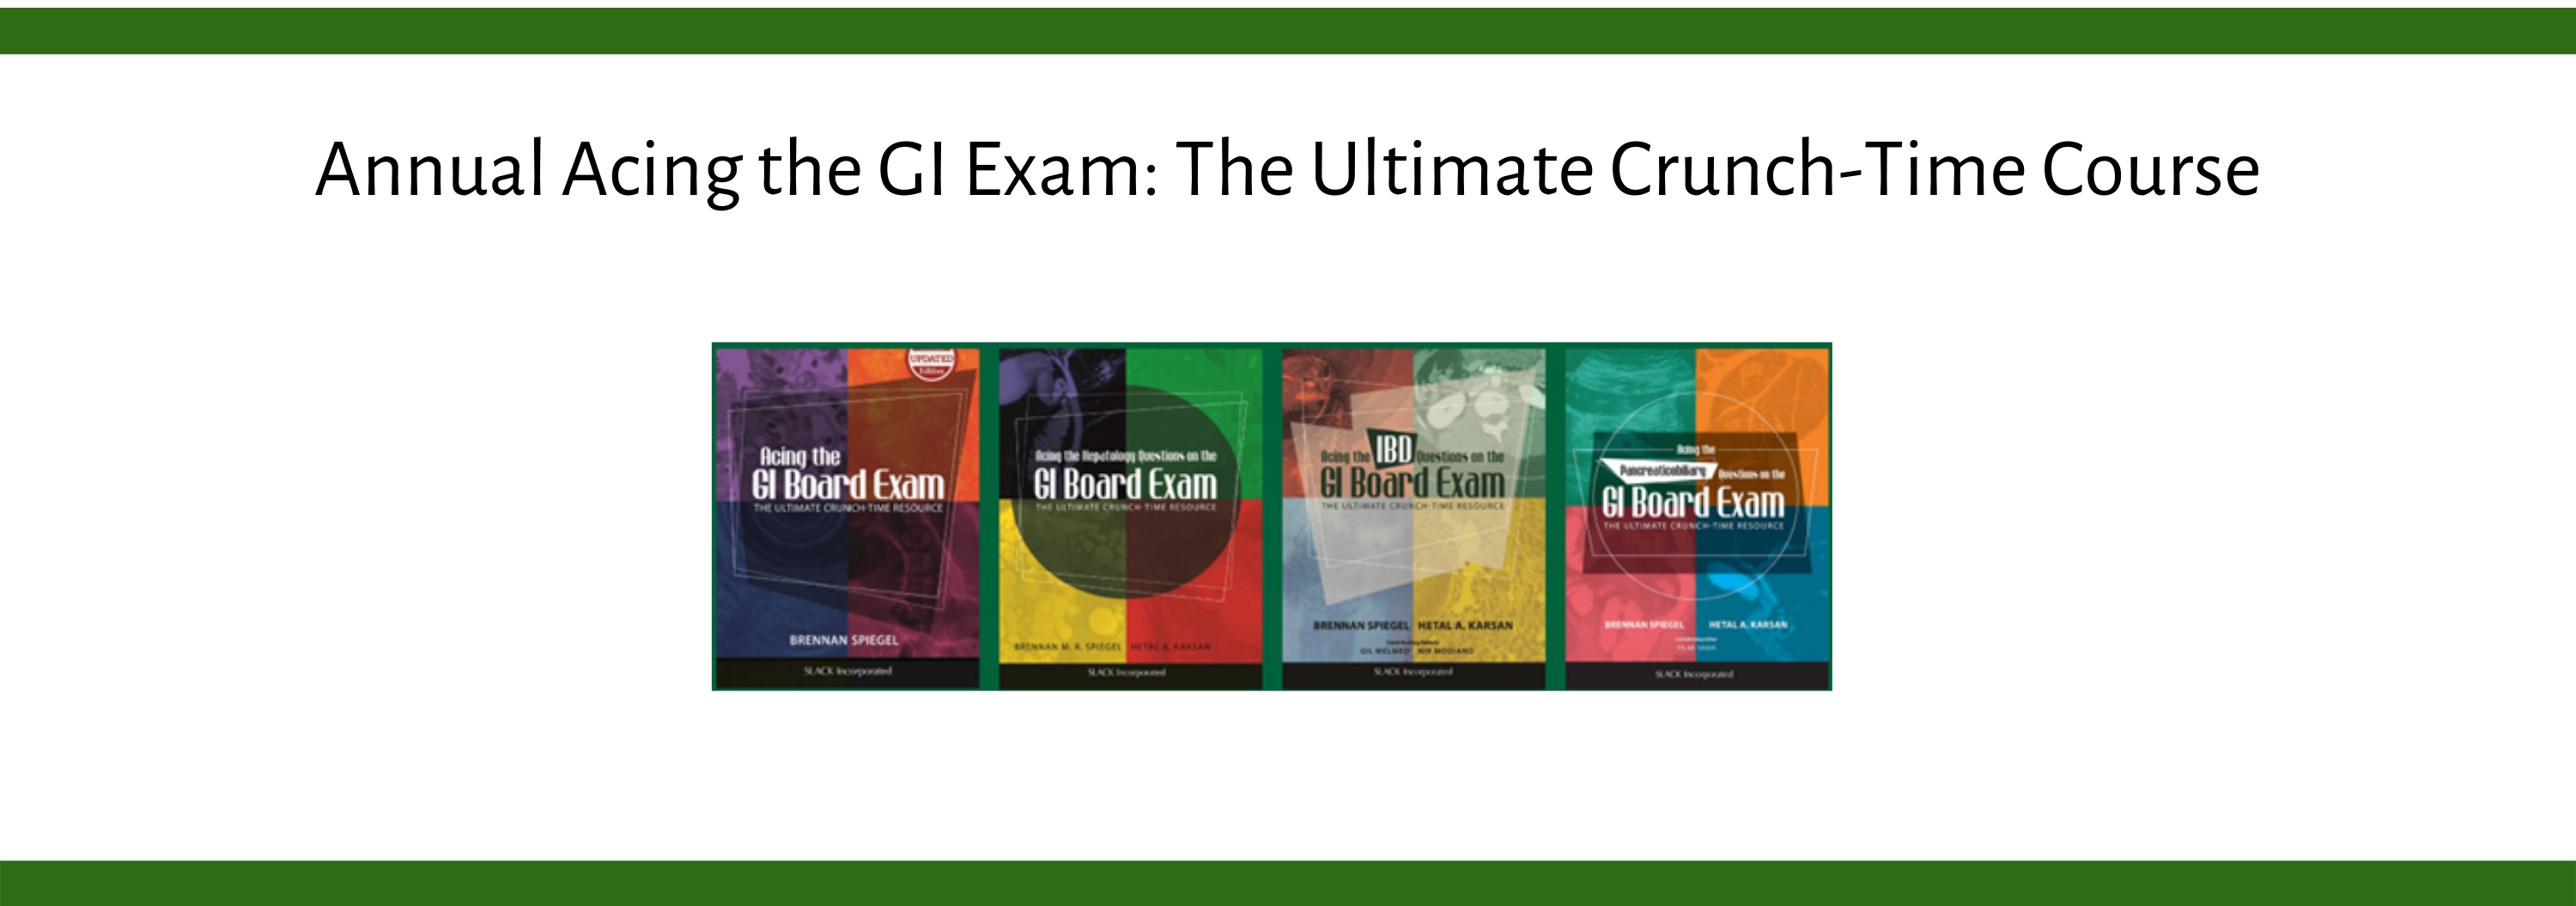 5th Annual Acing the GI Exam: The Ultimate Crunch-Time Course Banner